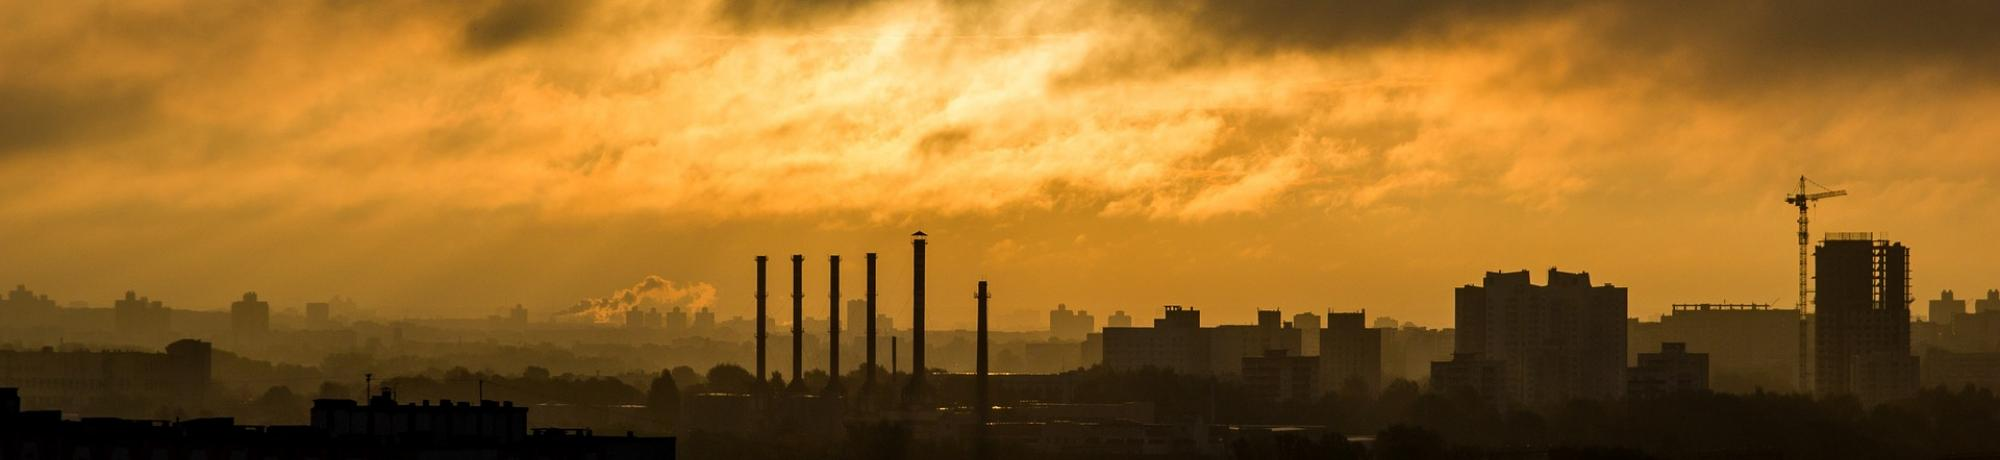 Image: a industrial emissions envelope a metropolitan area at dusk. Image by Free-Image of Pixabay. End ID.